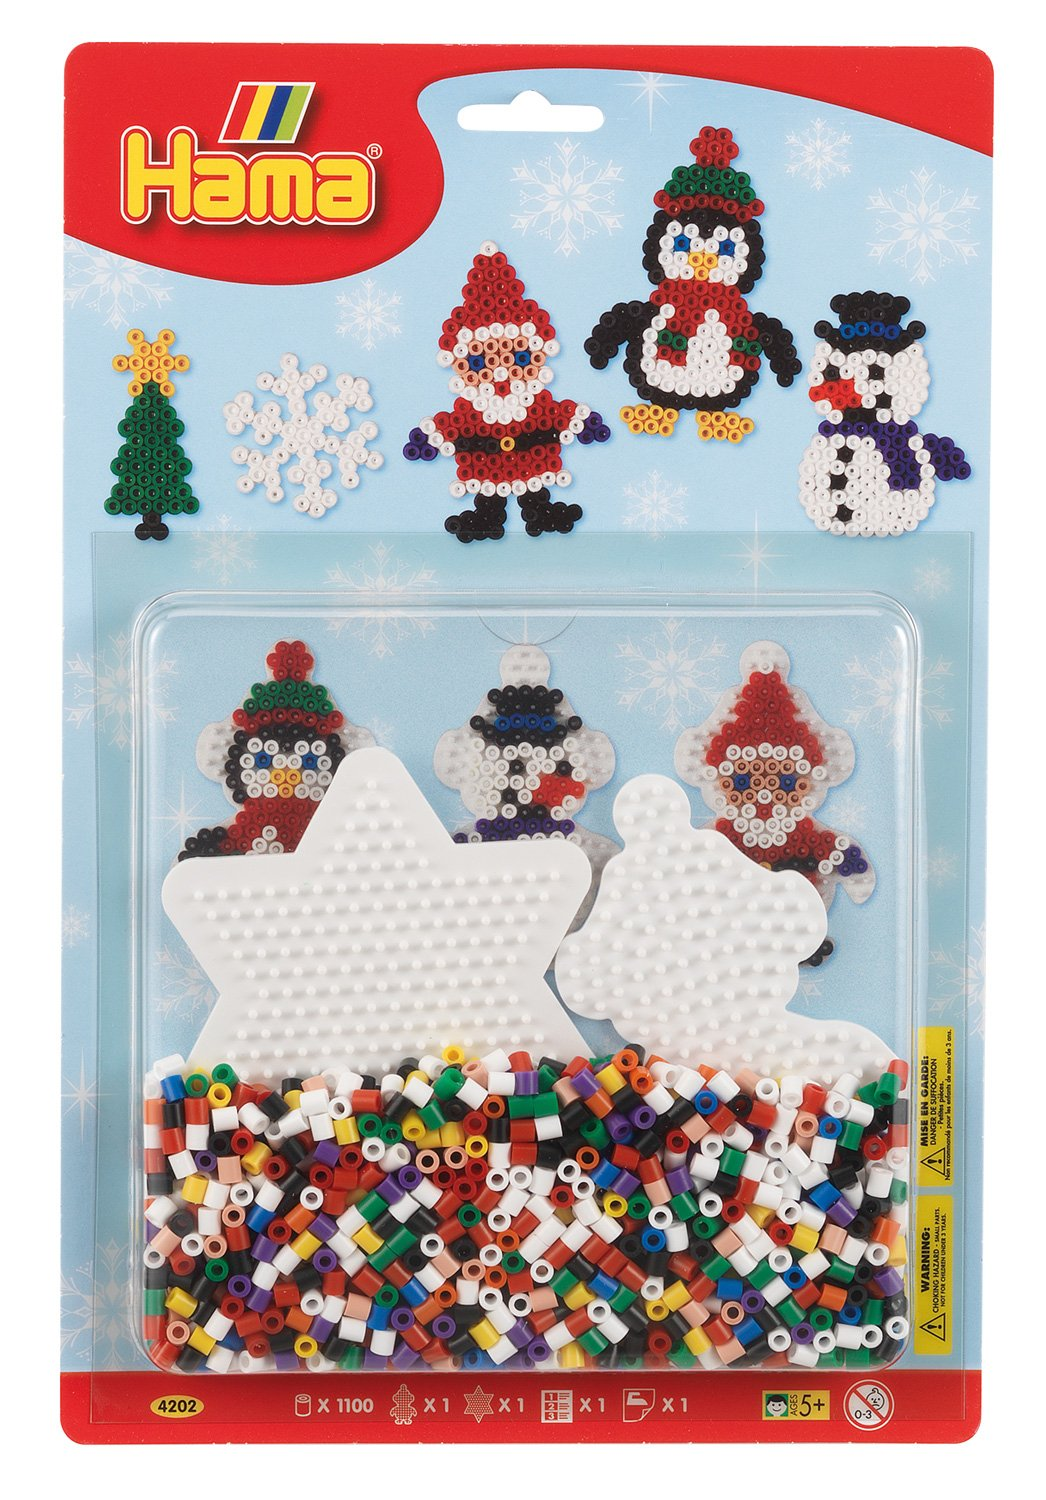 Hama Beads Large Christmas Blister Pack 4202